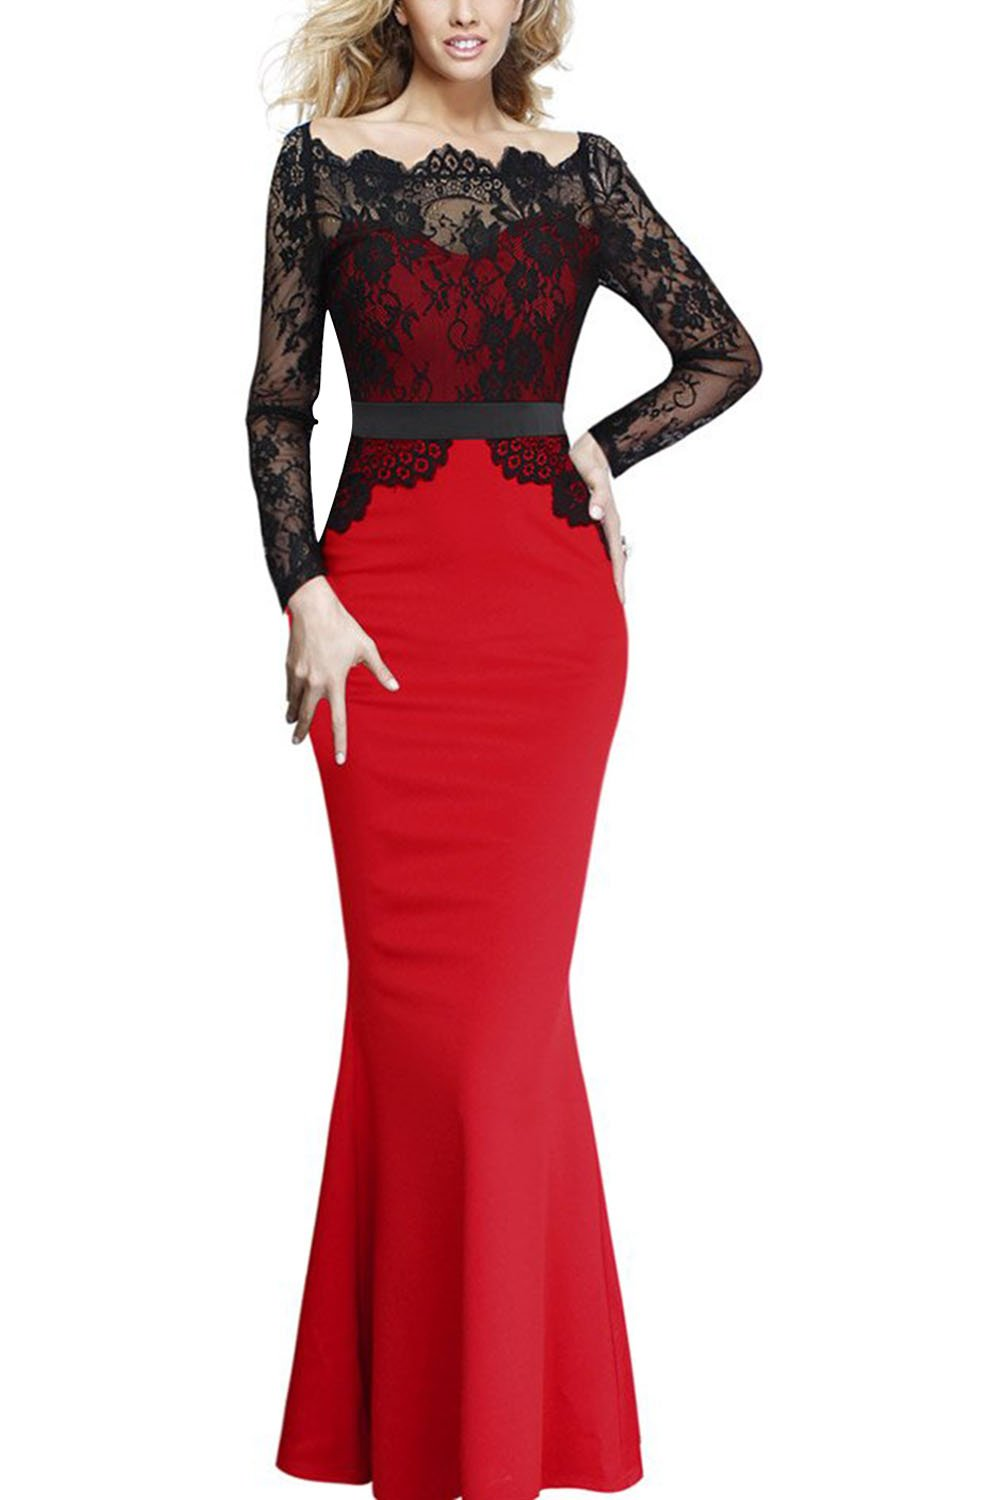 Viwenni Women Lace Maxi Cocktail Party Evening Fromal Gown Dress, Red, Small